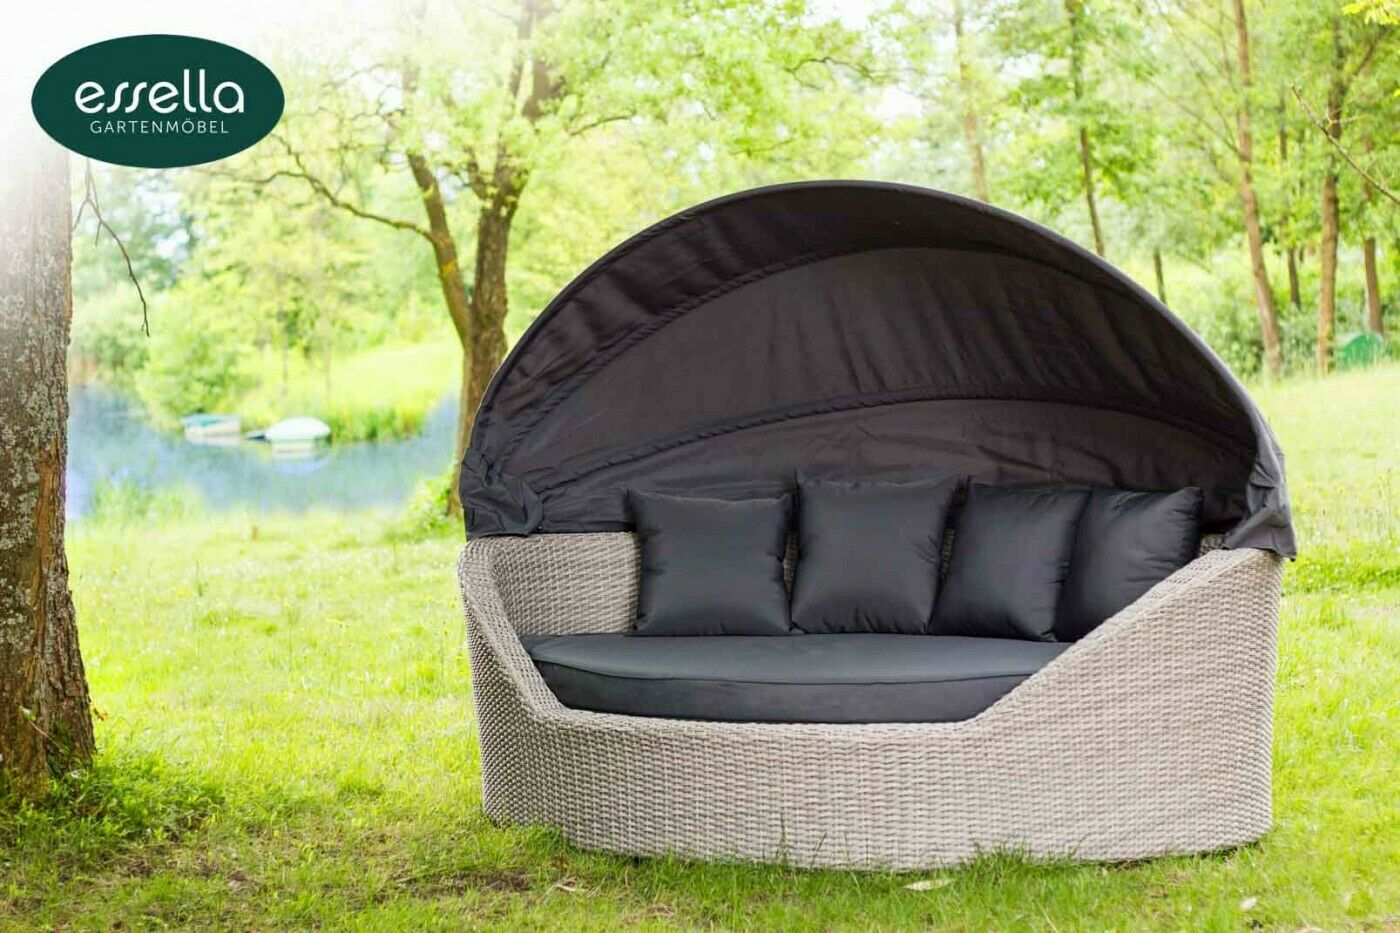 essella polyrattan sonneninsel garten liege muschel love. Black Bedroom Furniture Sets. Home Design Ideas